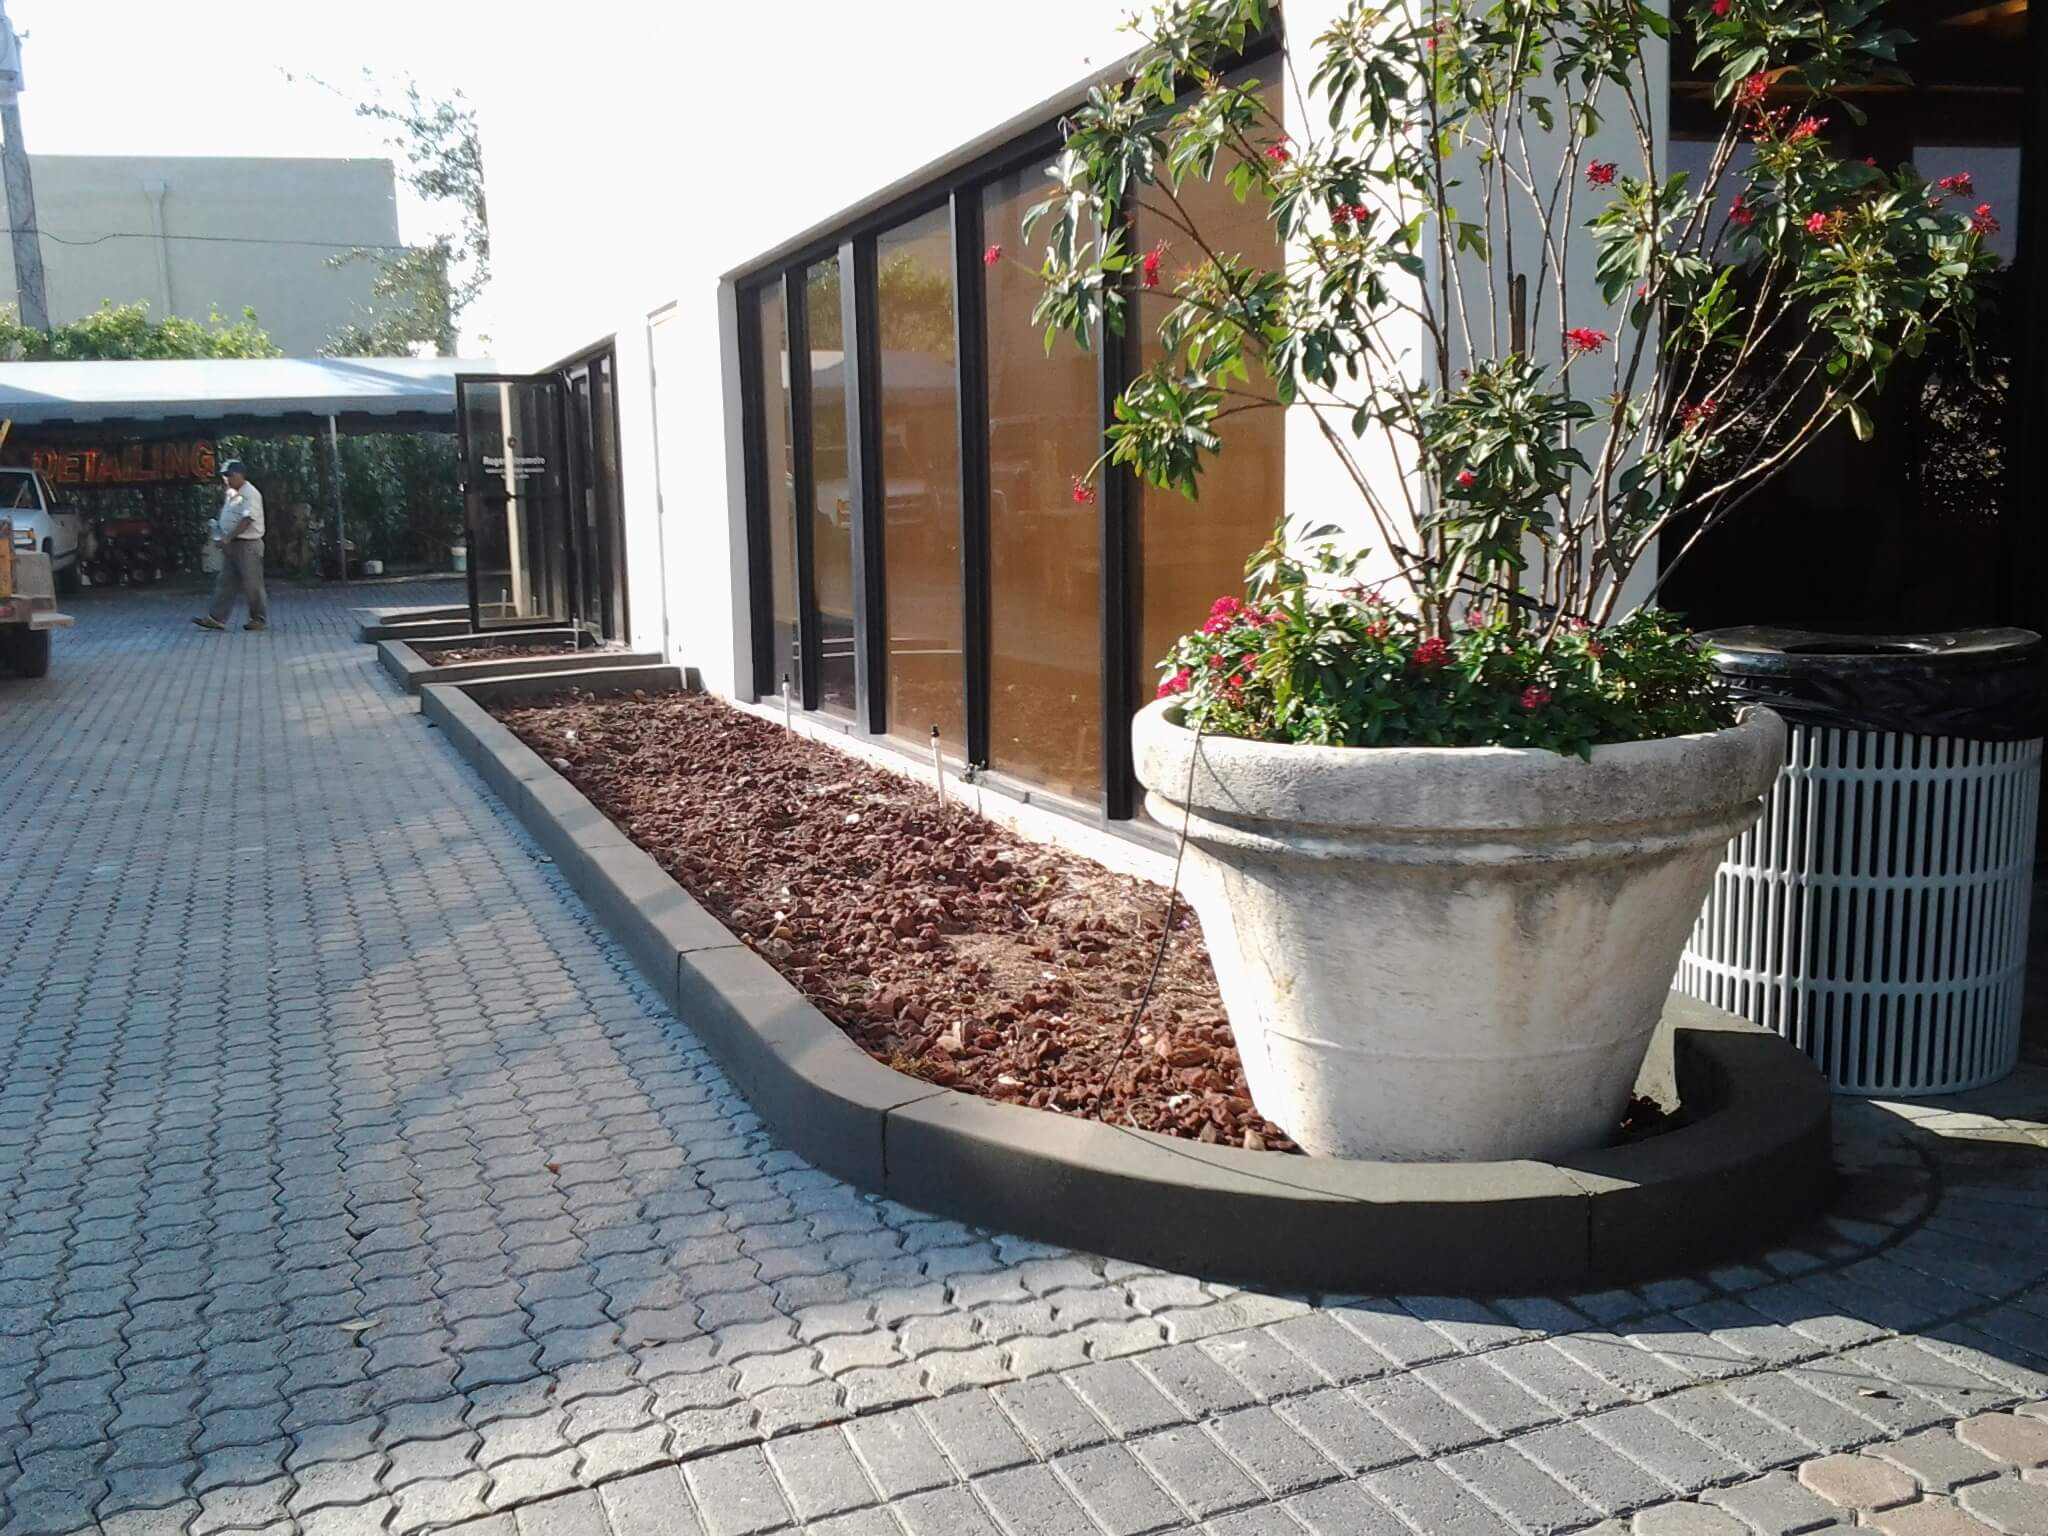 Commercial concrete curbing, driveways, patios, sidewalks, decorative garden